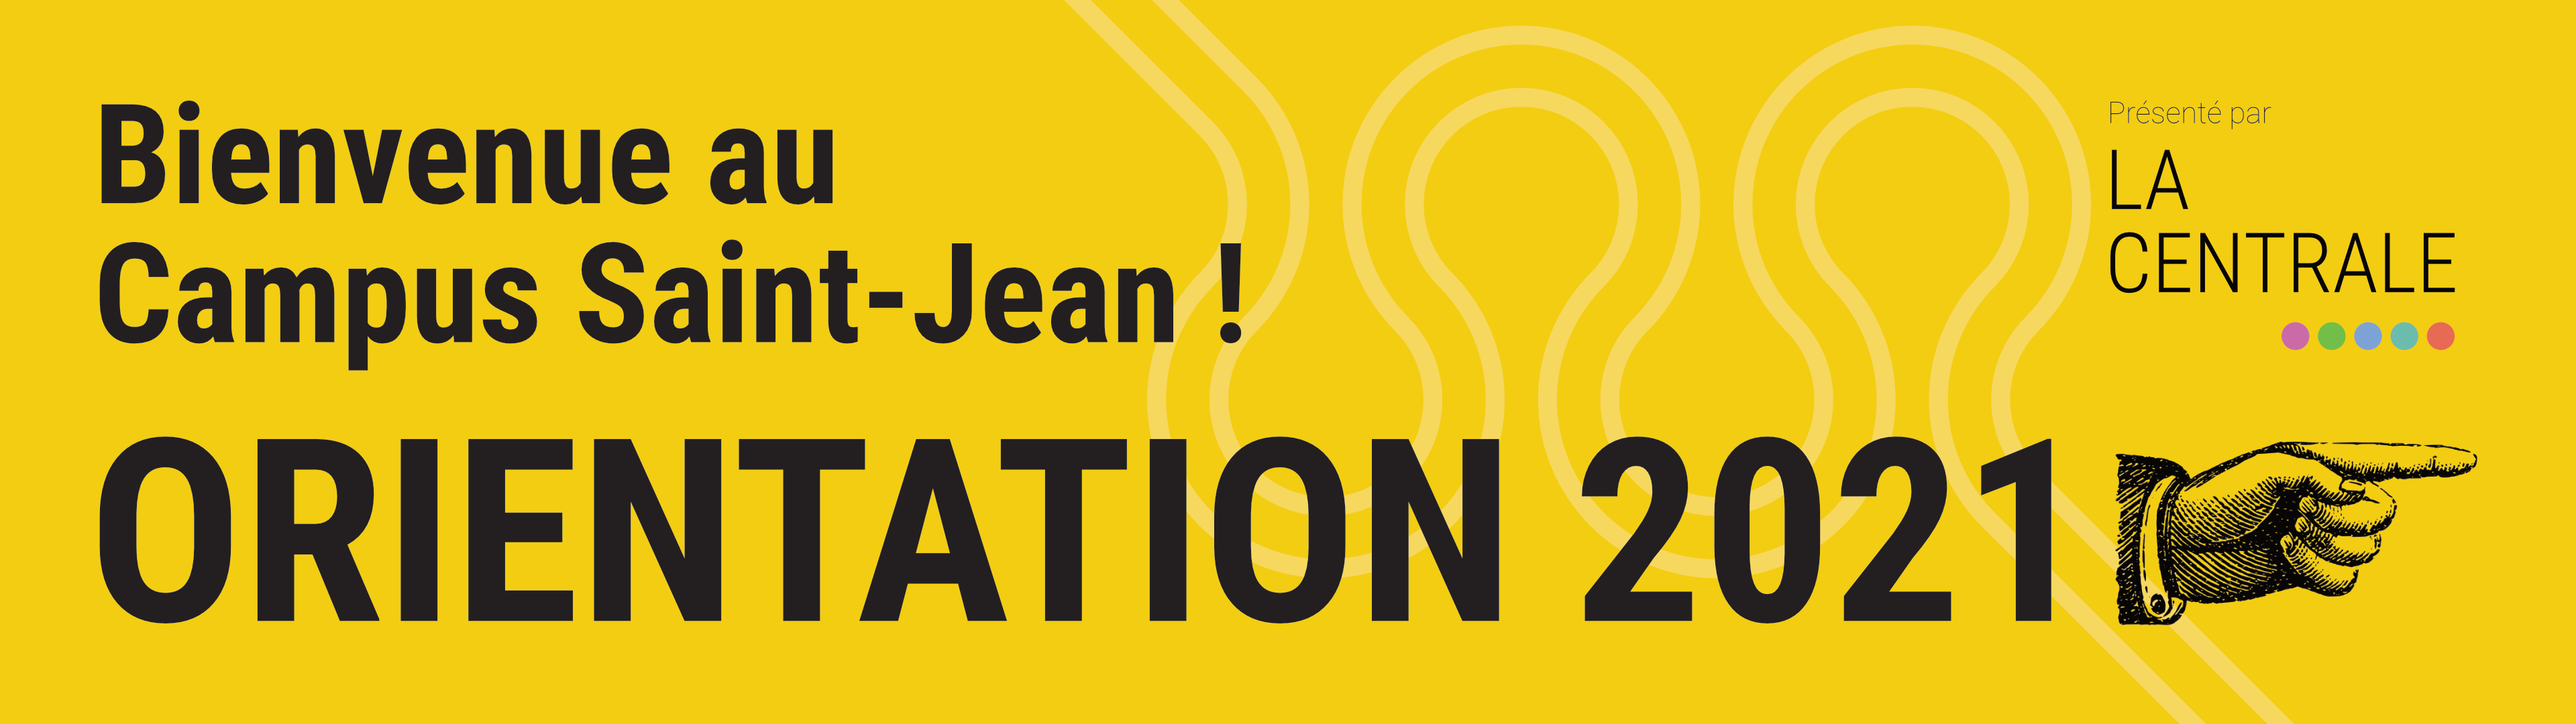 Welcome to Campus Saint-Jean! Orientation 2021 is this way